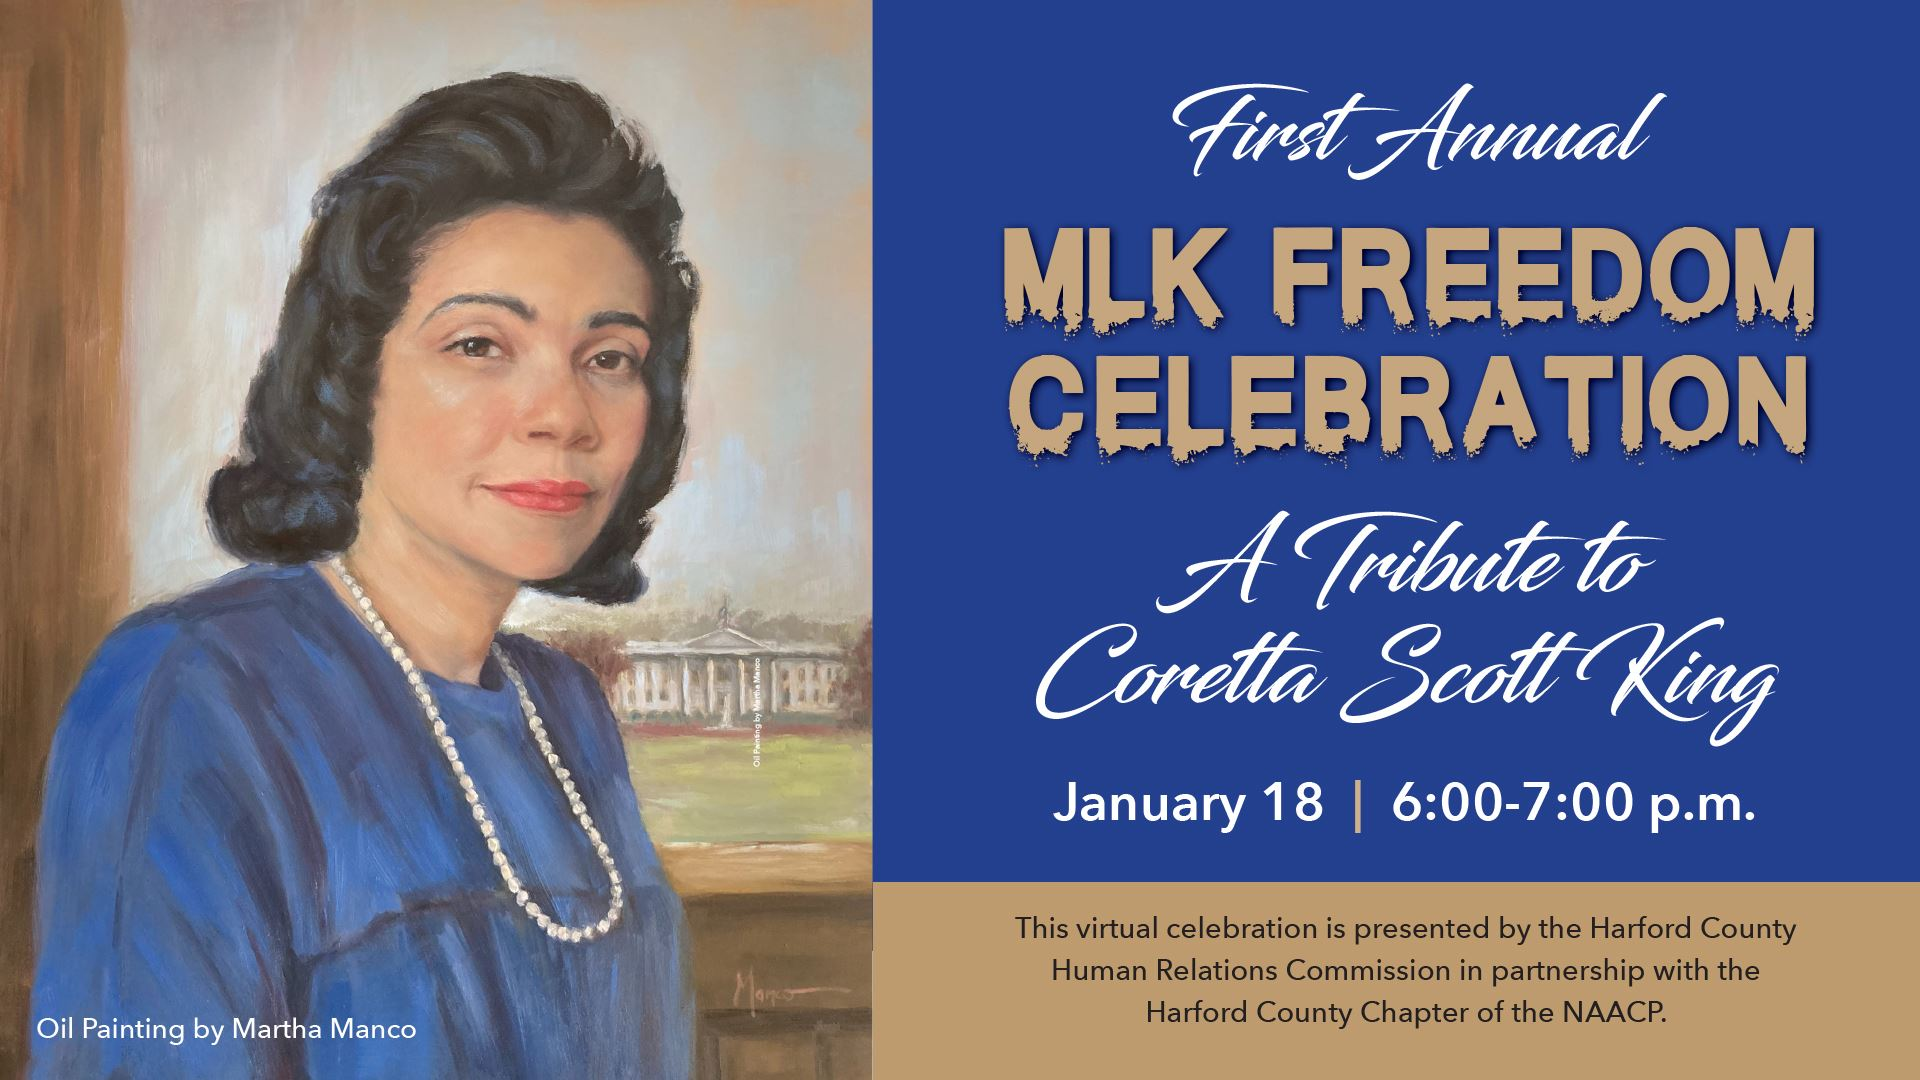 MLK Freedom Celebration - Click to Watch